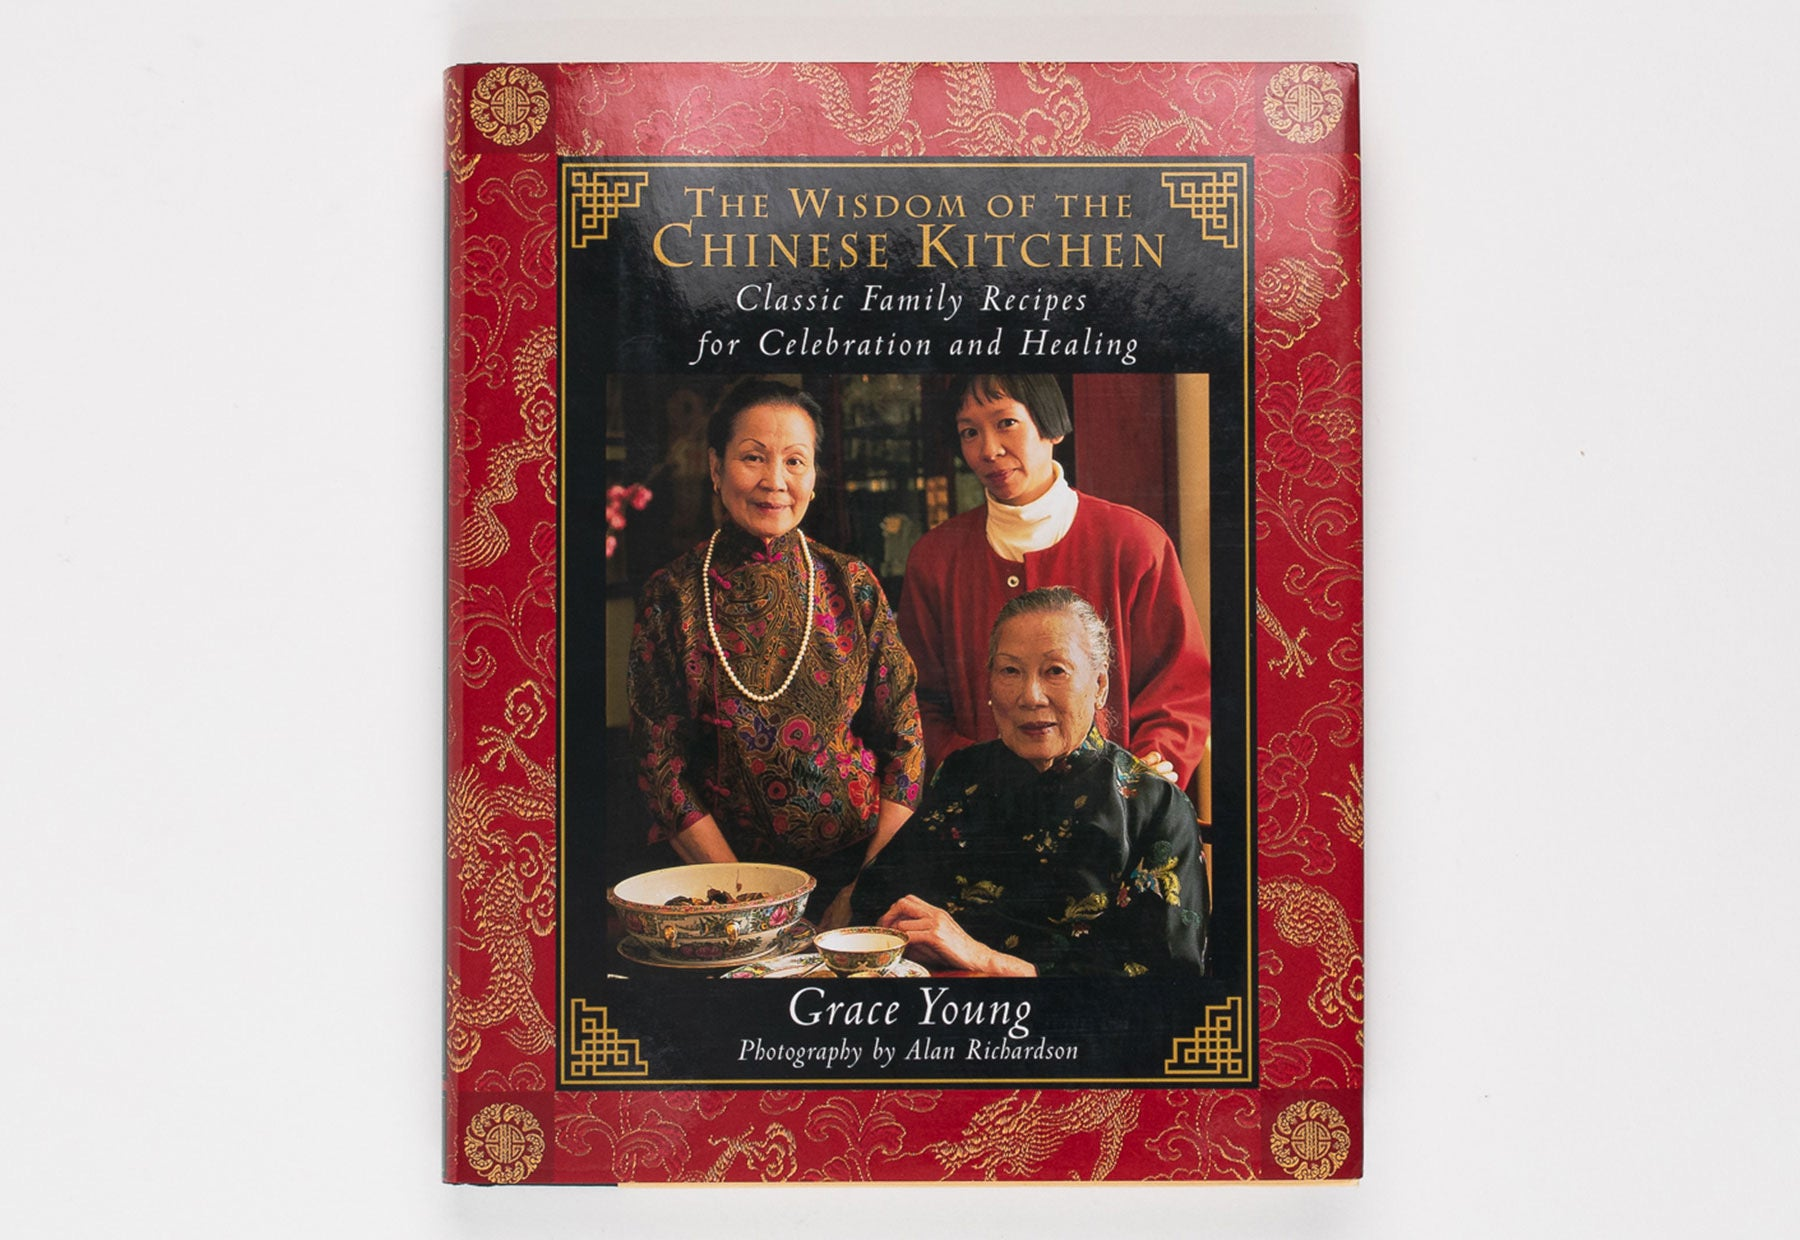 The Wisdom of the Chinese Kitchen by Grace Young